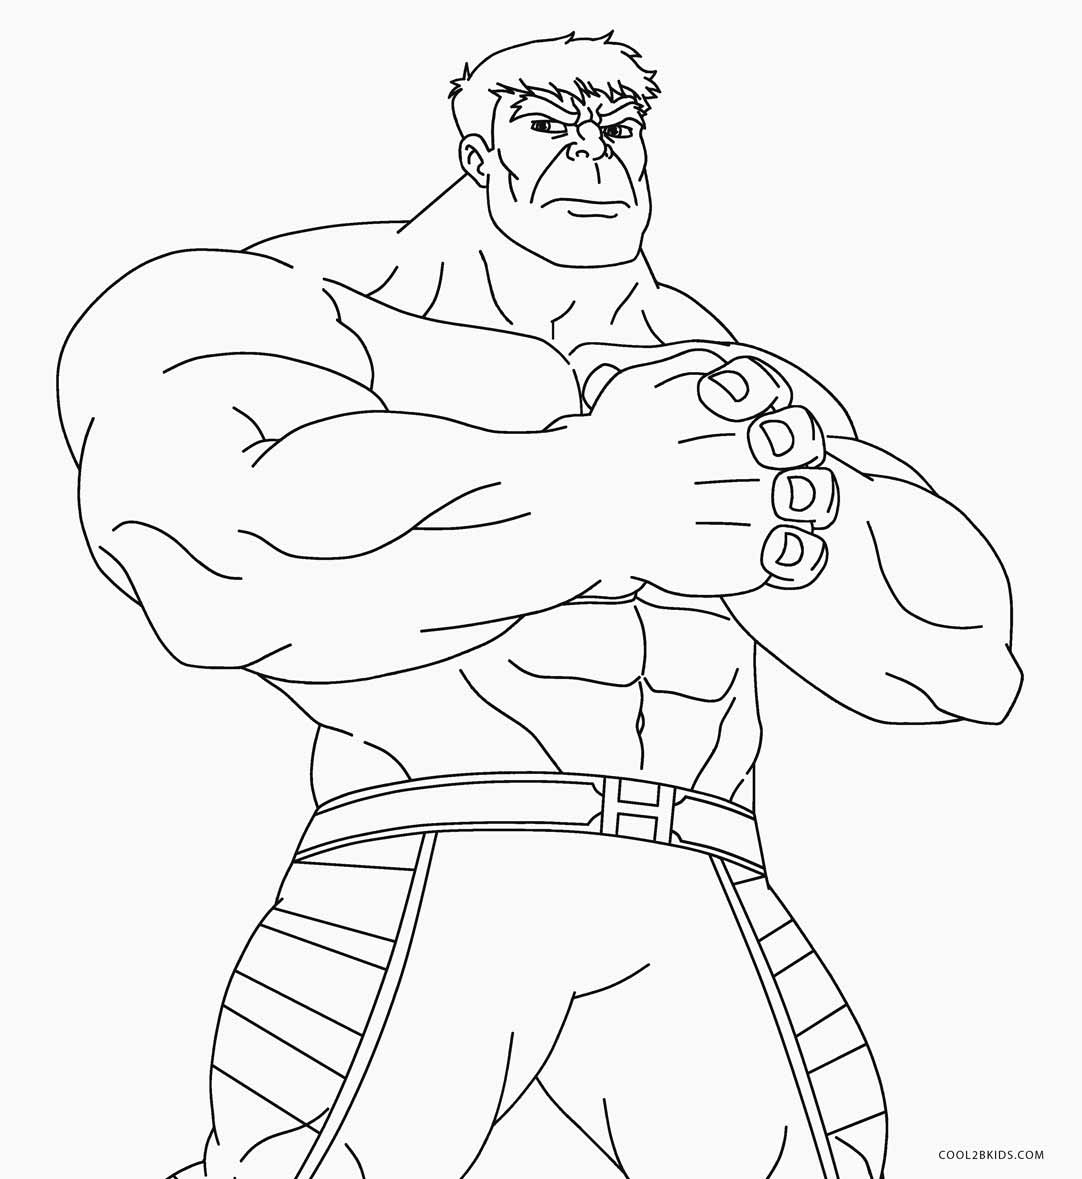 the hulk coloring hulk coloring pages download and print hulk coloring pages coloring the hulk